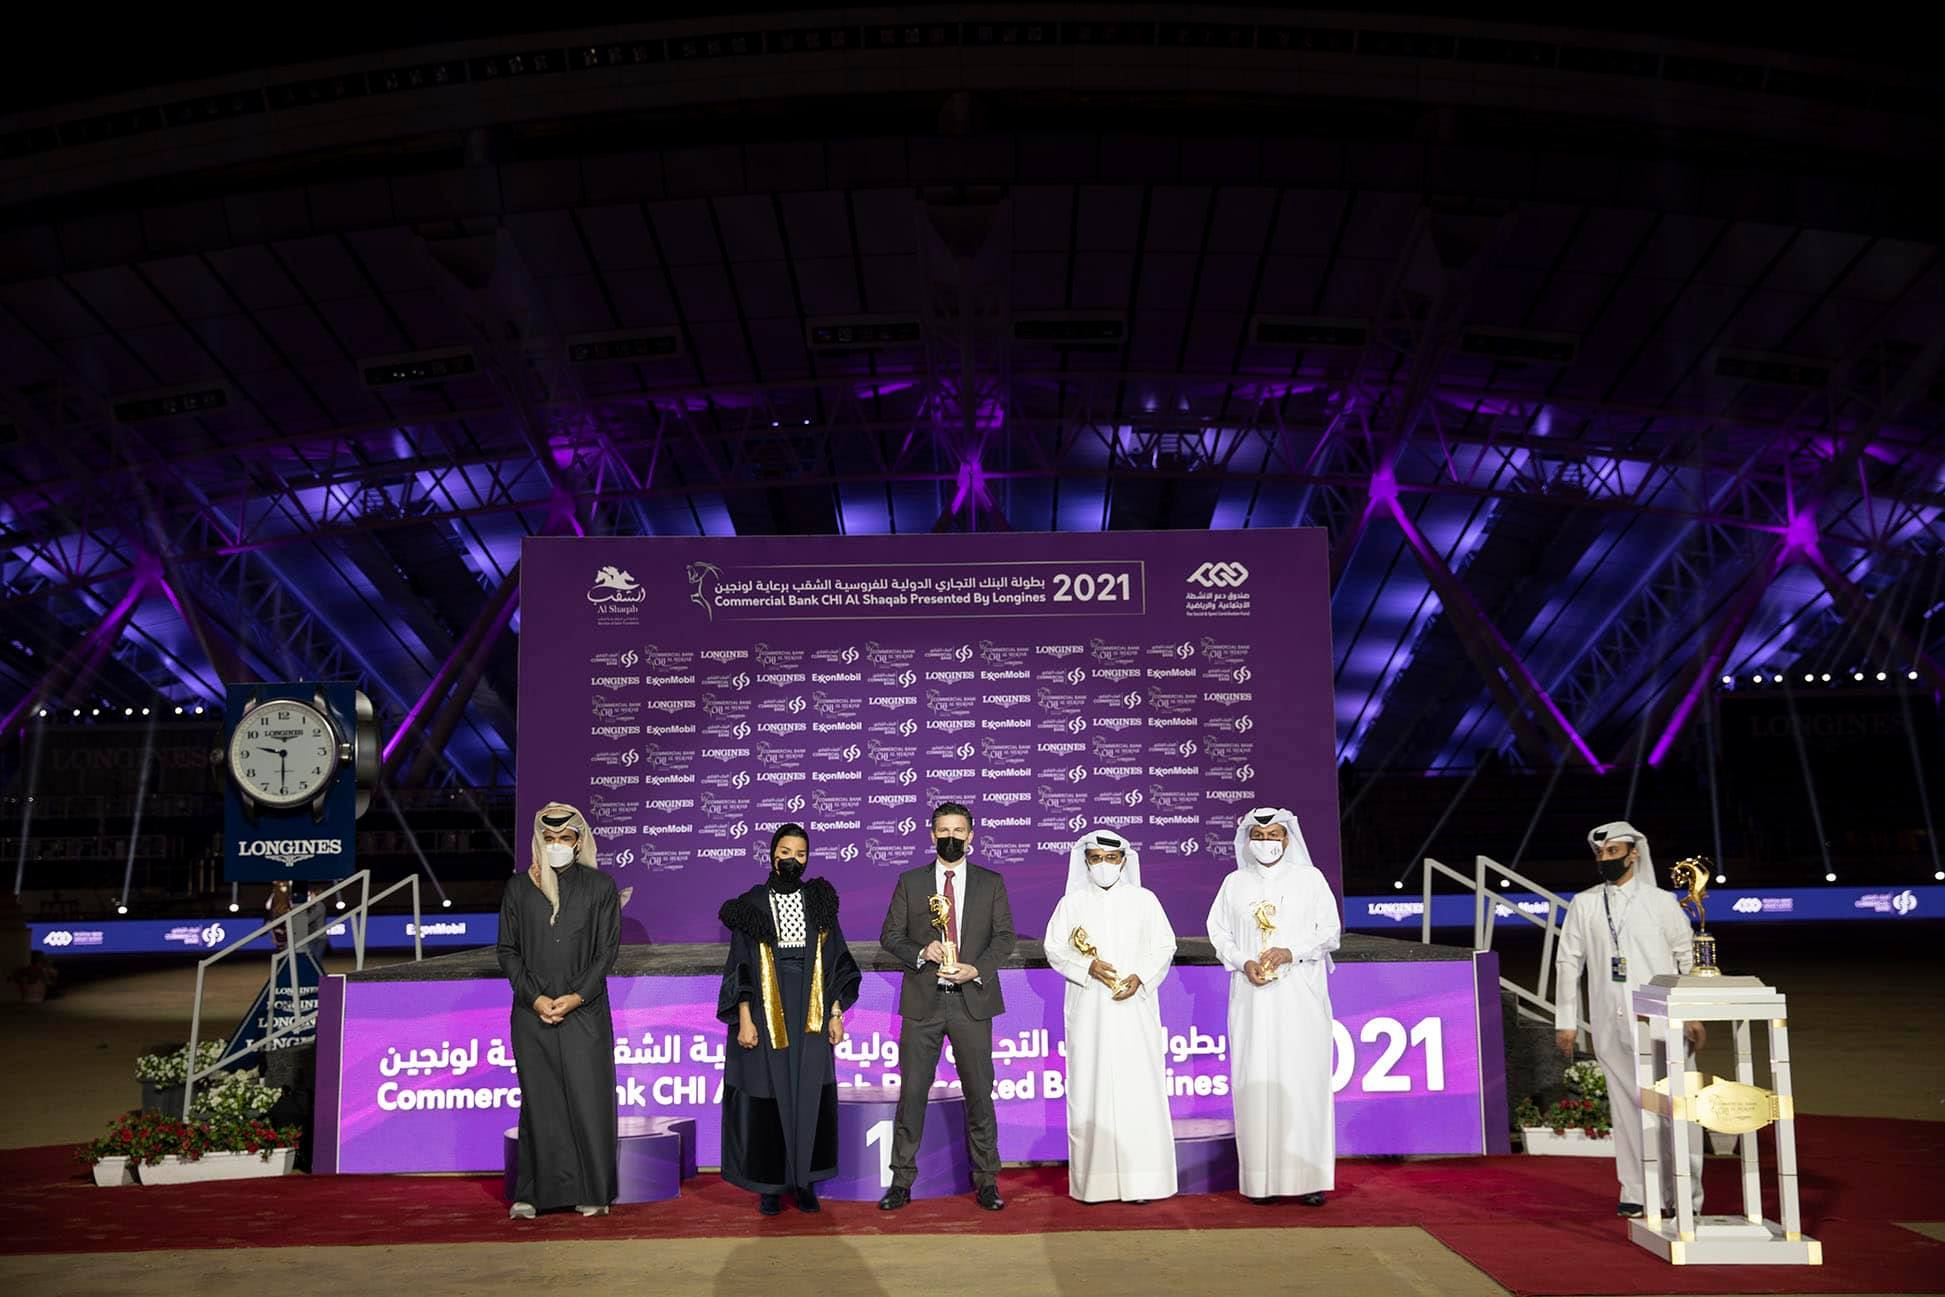 Sheikha Moza Witnesses Conclusion of Commercial Bank CHI Al SHAQAB